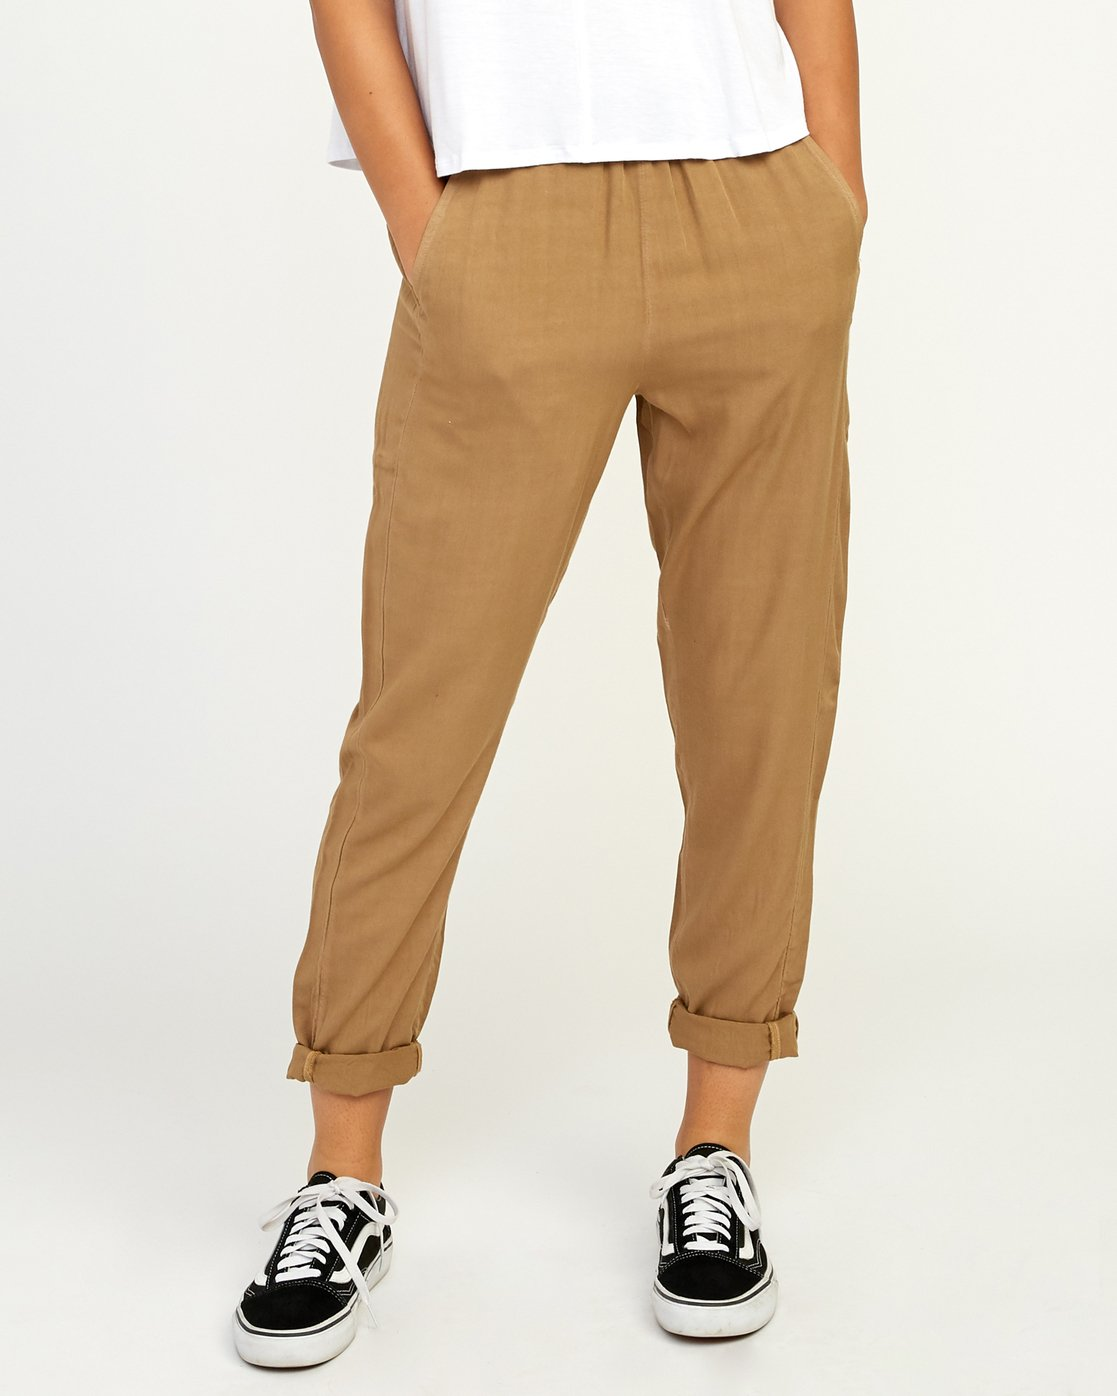 0 Chill Vibes Elastic Pant Beige W301PRCV RVCA